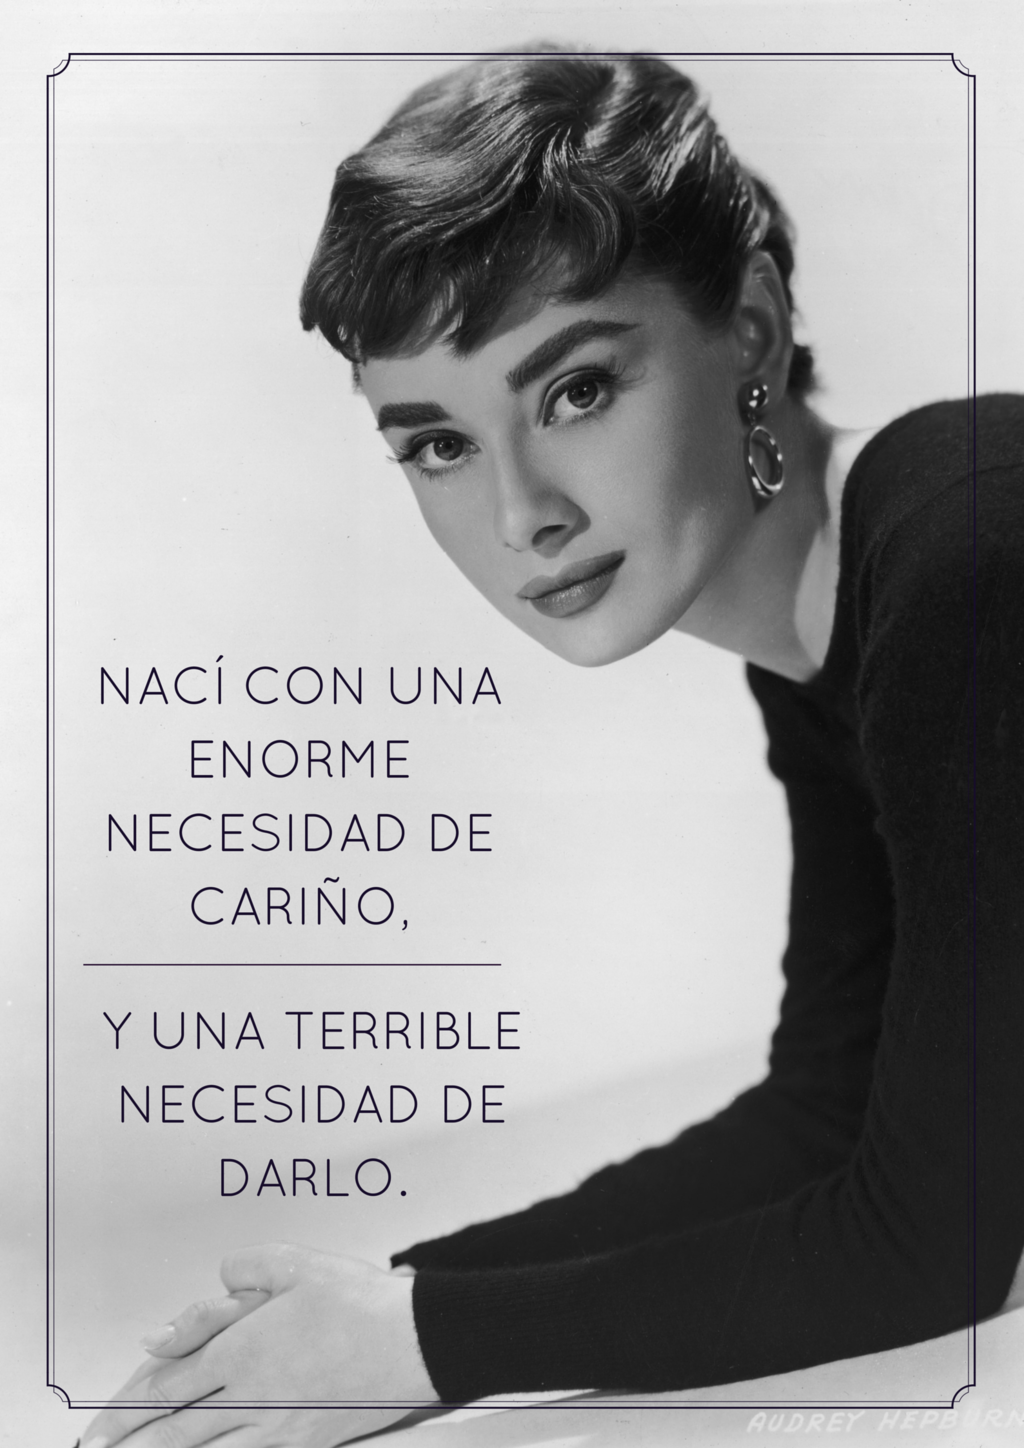 Audrey Hepburn, Coco Chanel and Marilyn Monroe on what it means to be a real woman